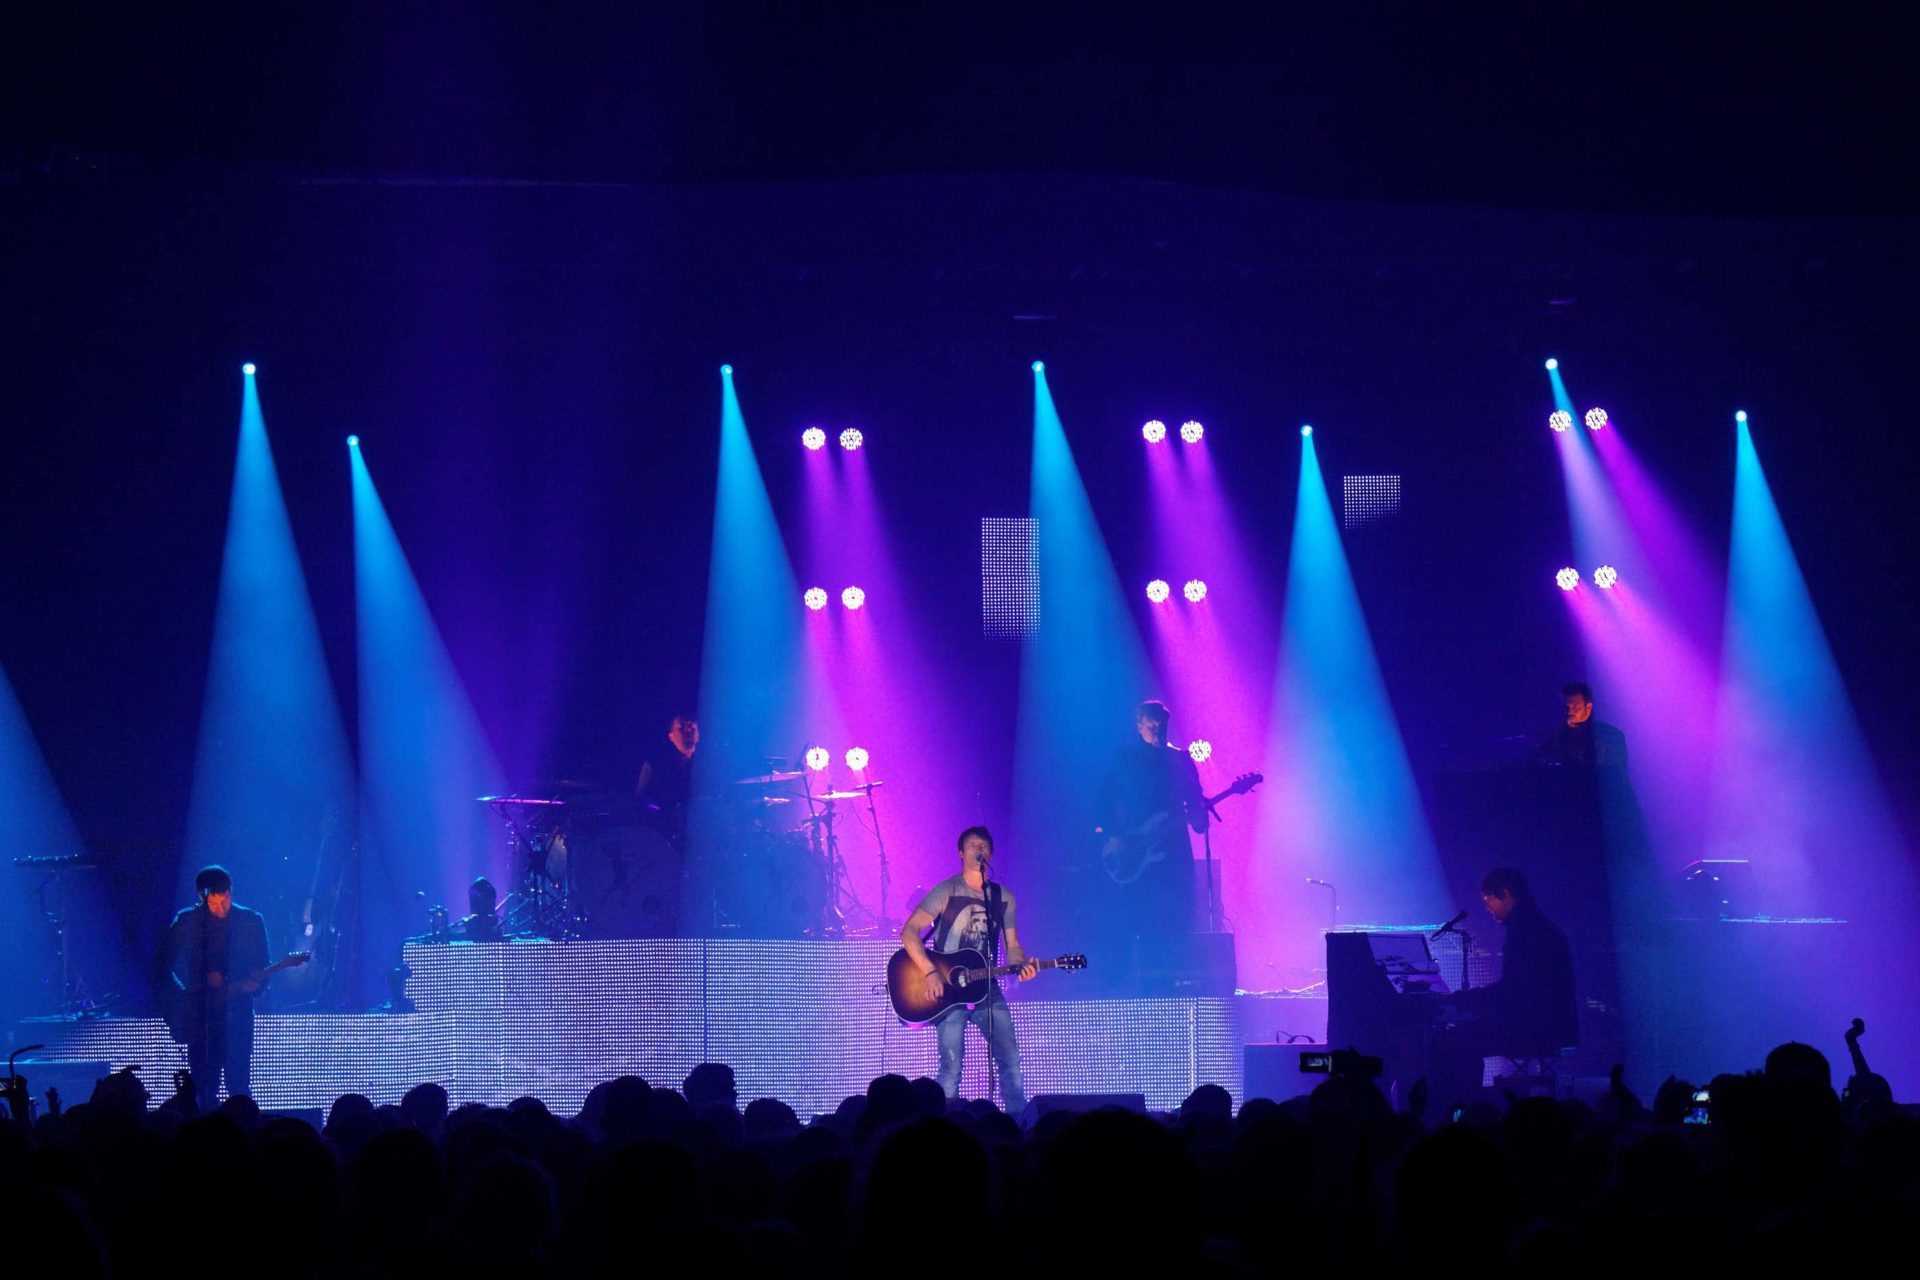 spectacle-lyon-james-blunt